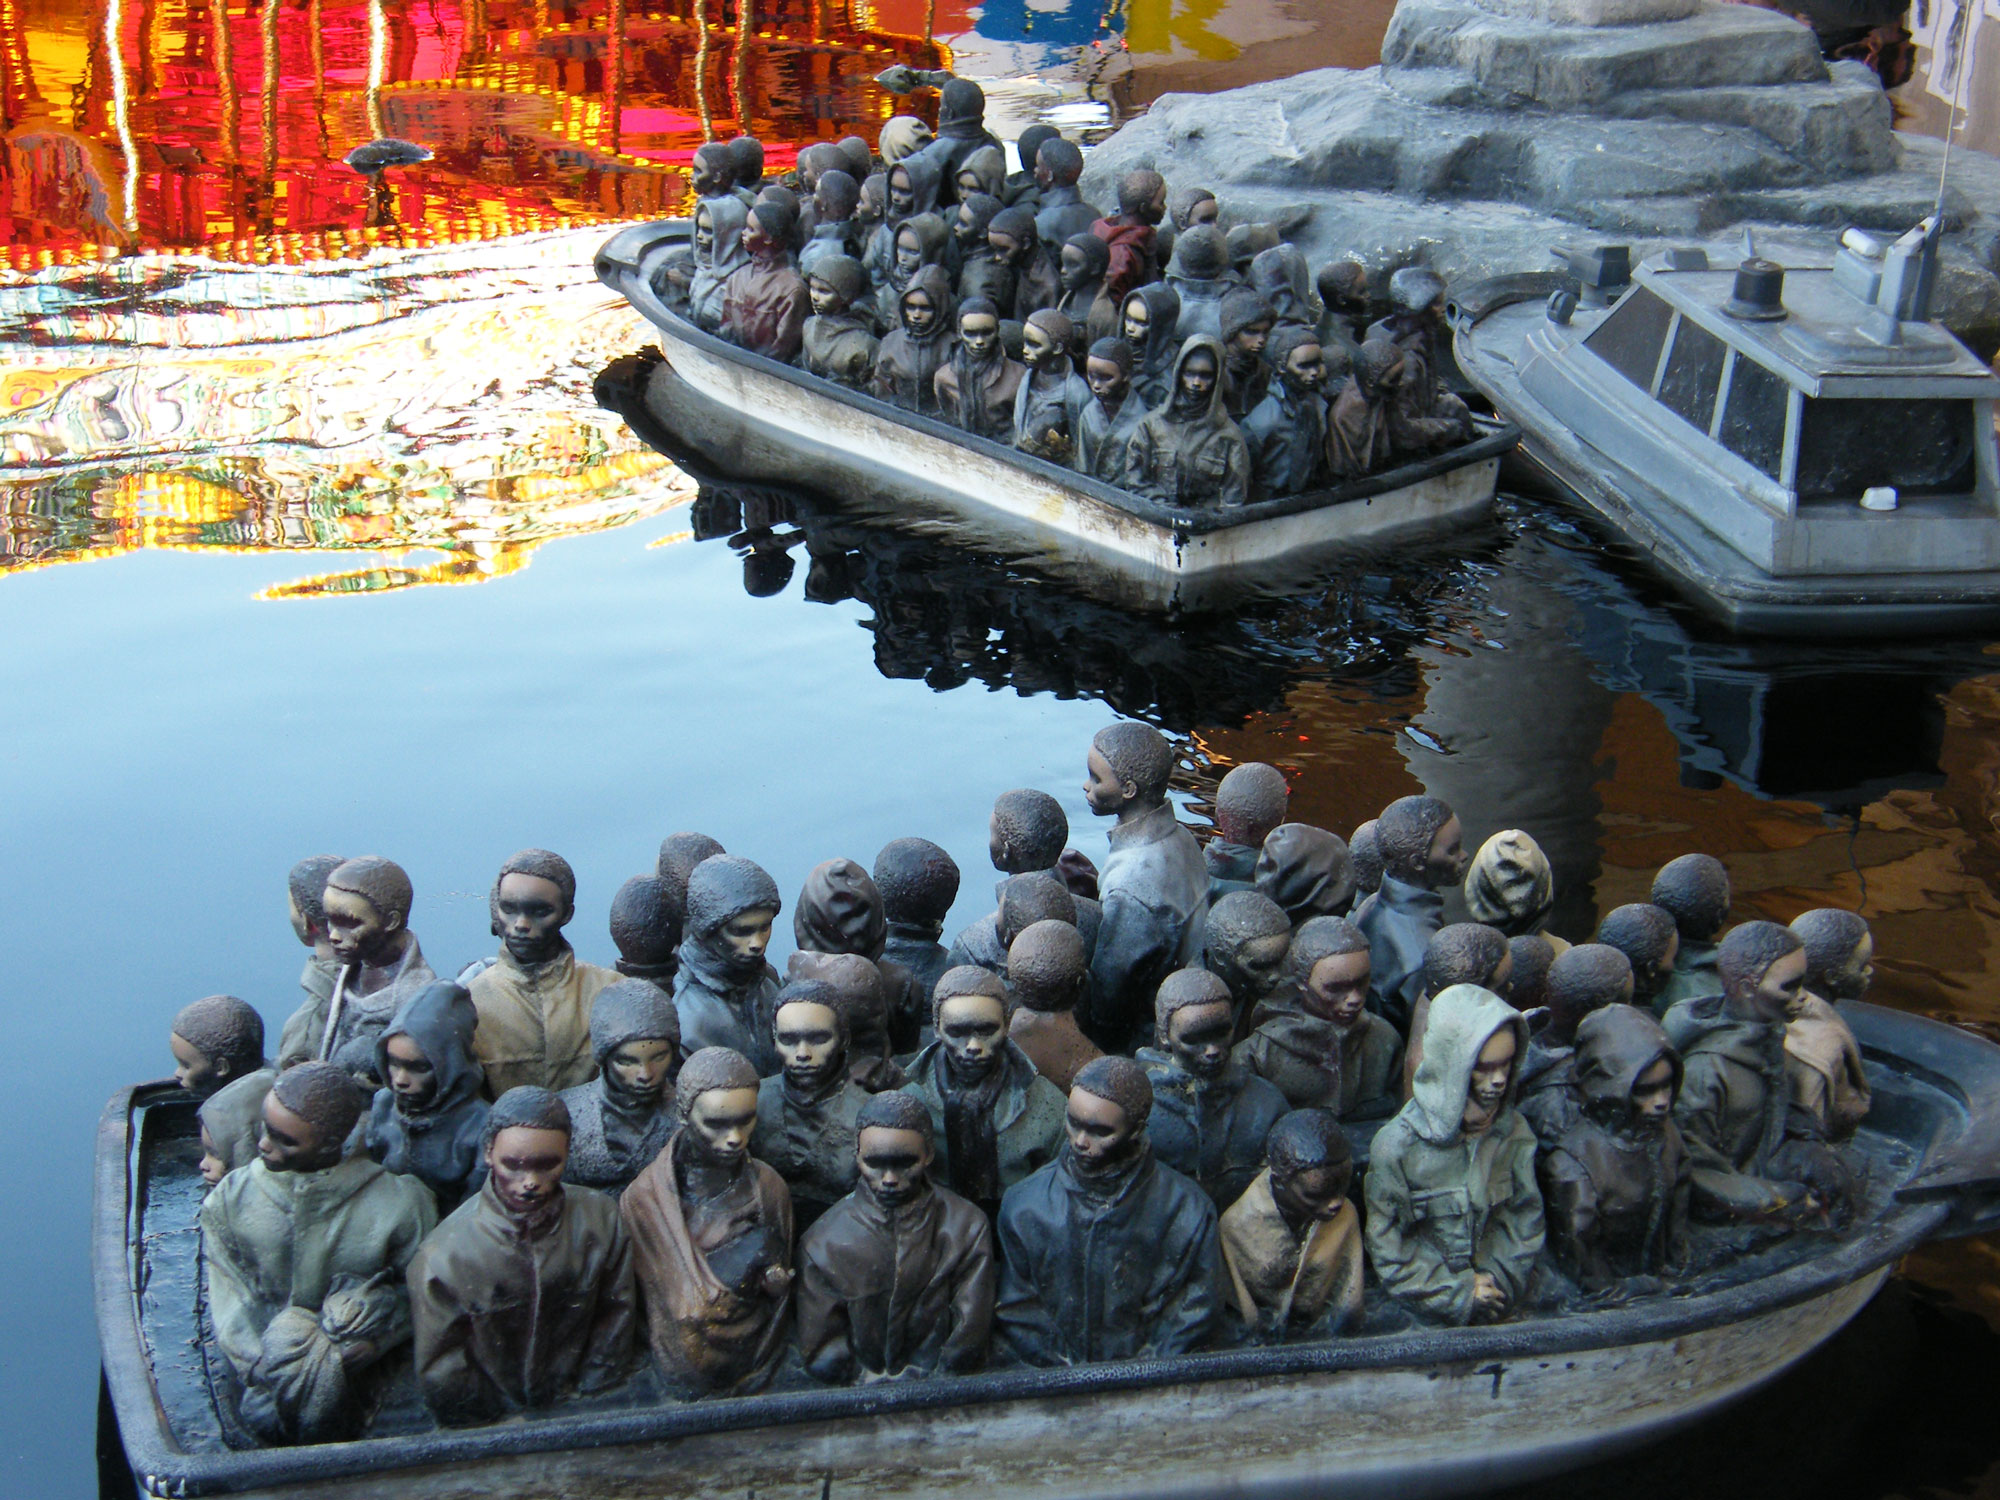 One of the installations at  Dismaland